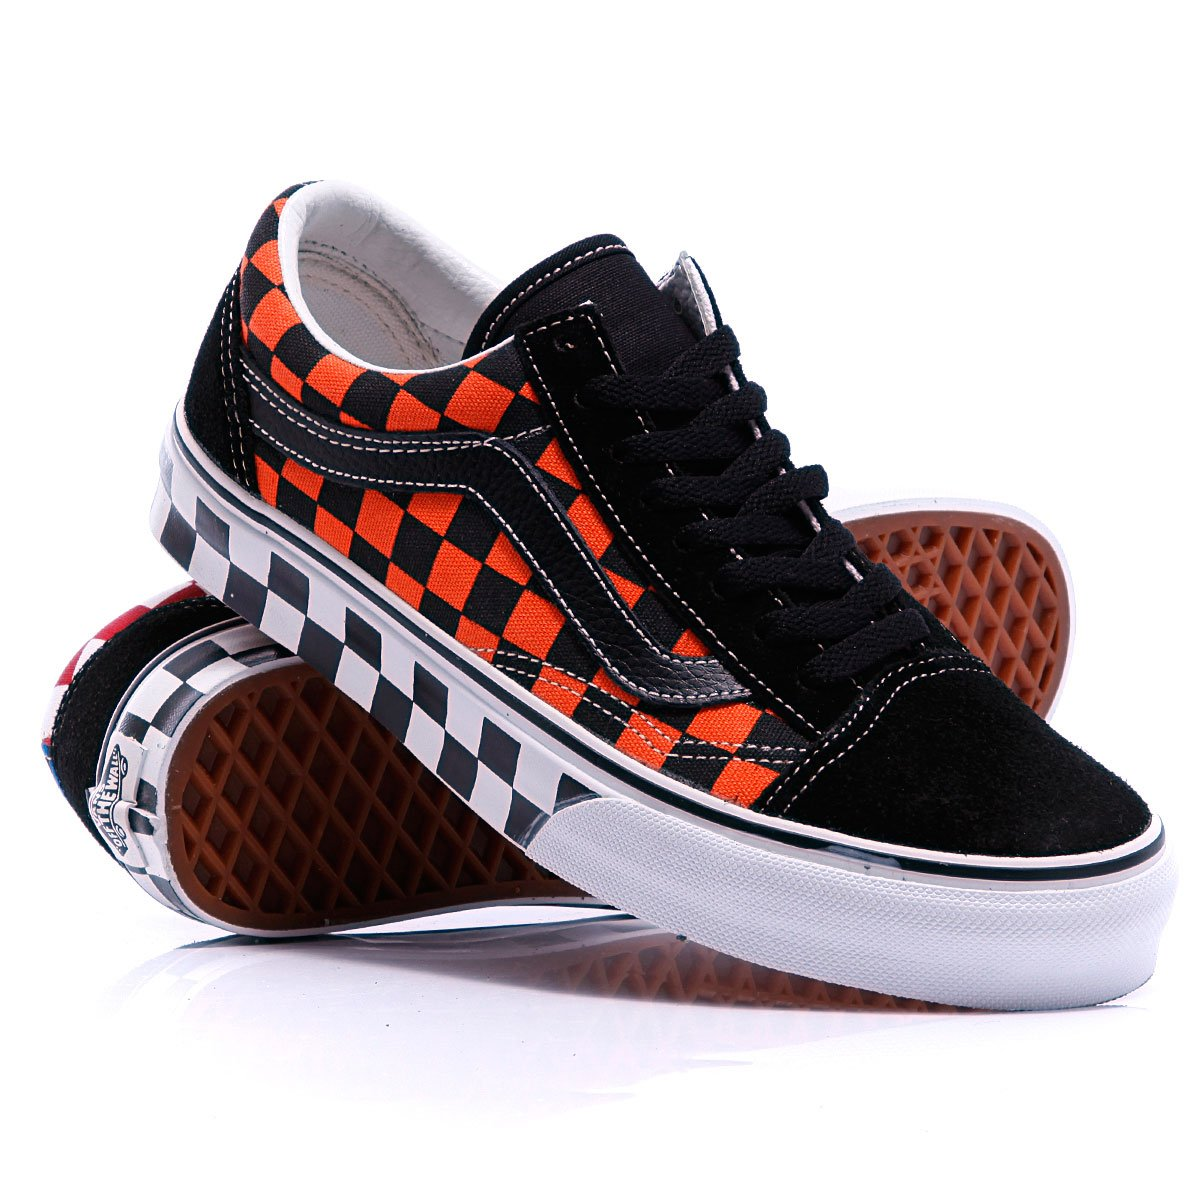 Купить кеды Vans Old Skool Black Flame Snorkel Blue (070711vans151) в  интернет-магазине Proskater.by 3664ebe7e21c6